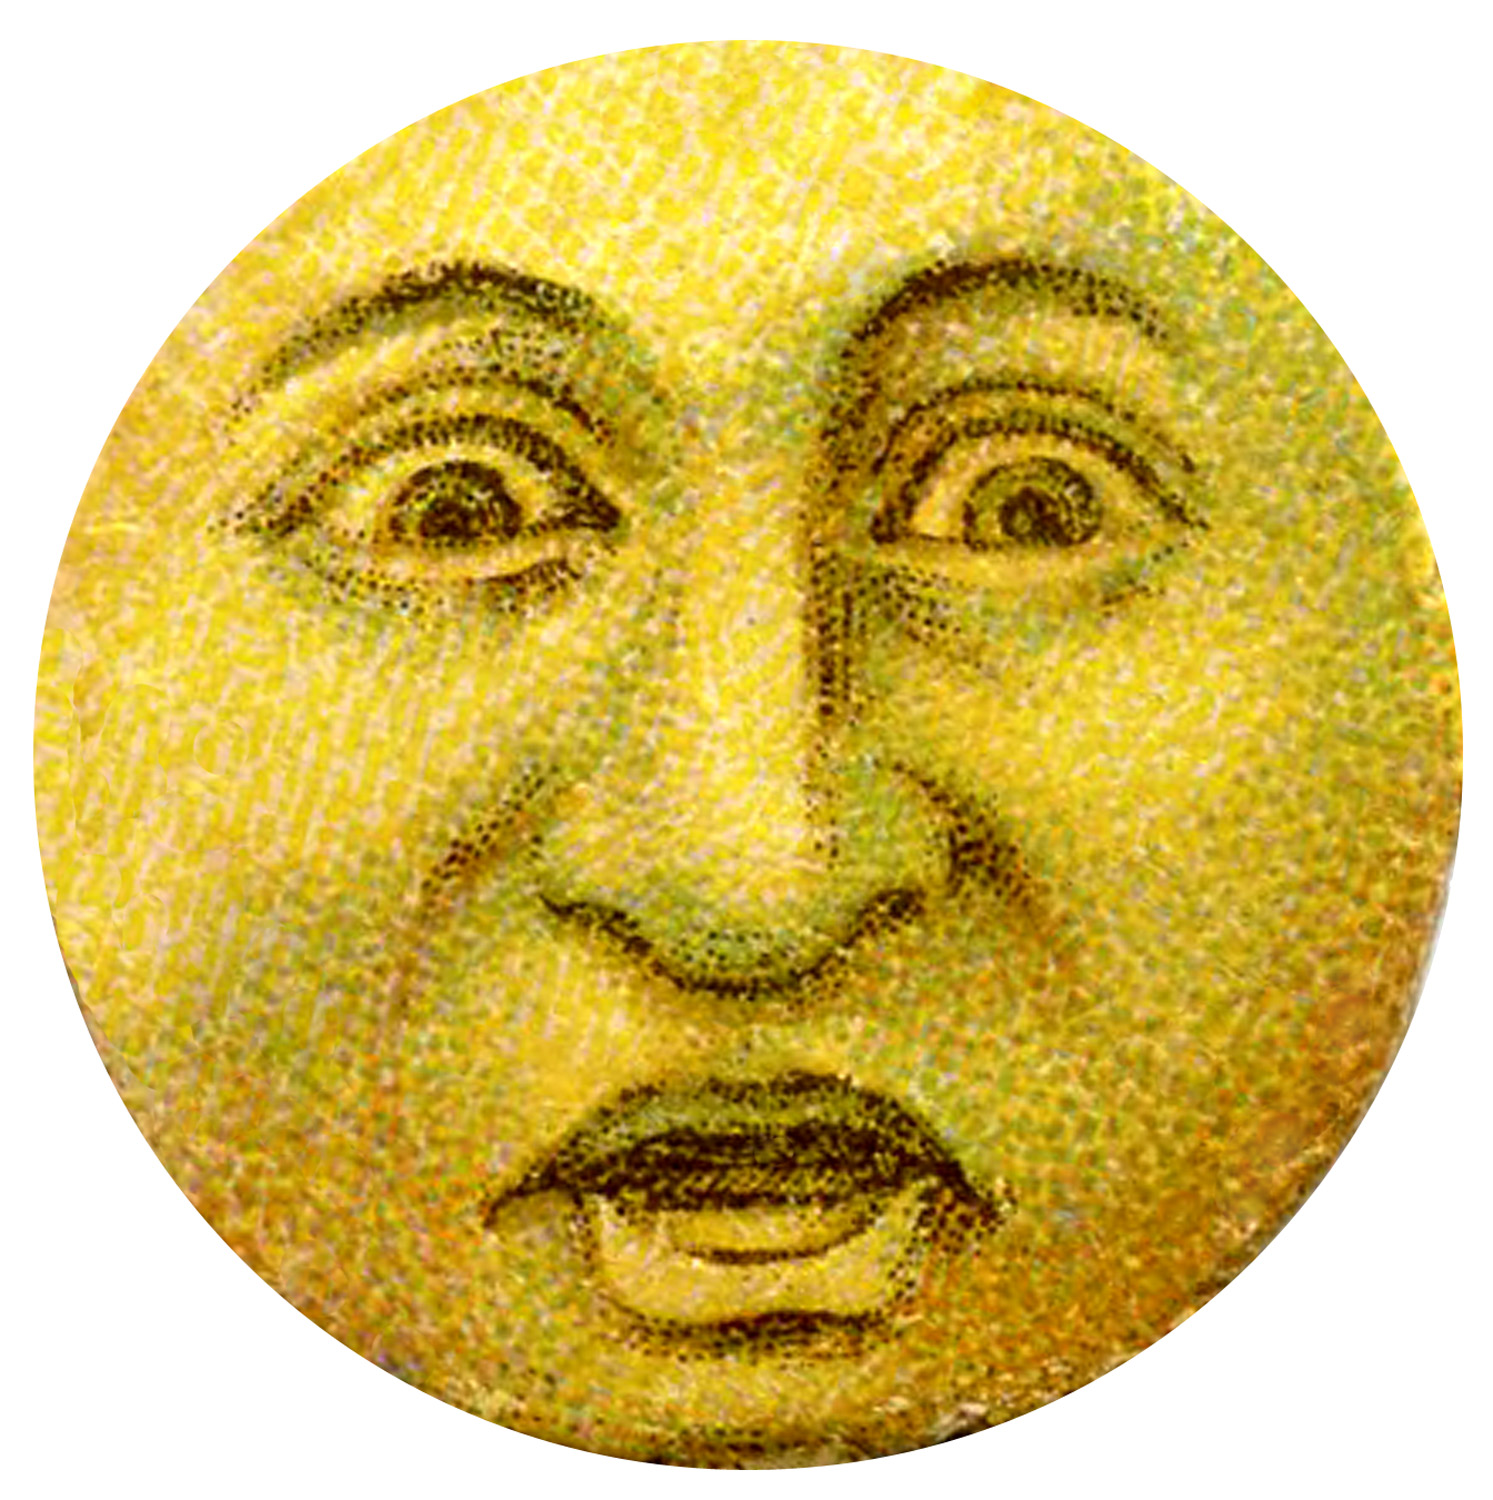 Victorian clipart moon clip free stock 11 Man in the Moon Clipart! - The Graphics Fairy clip free stock